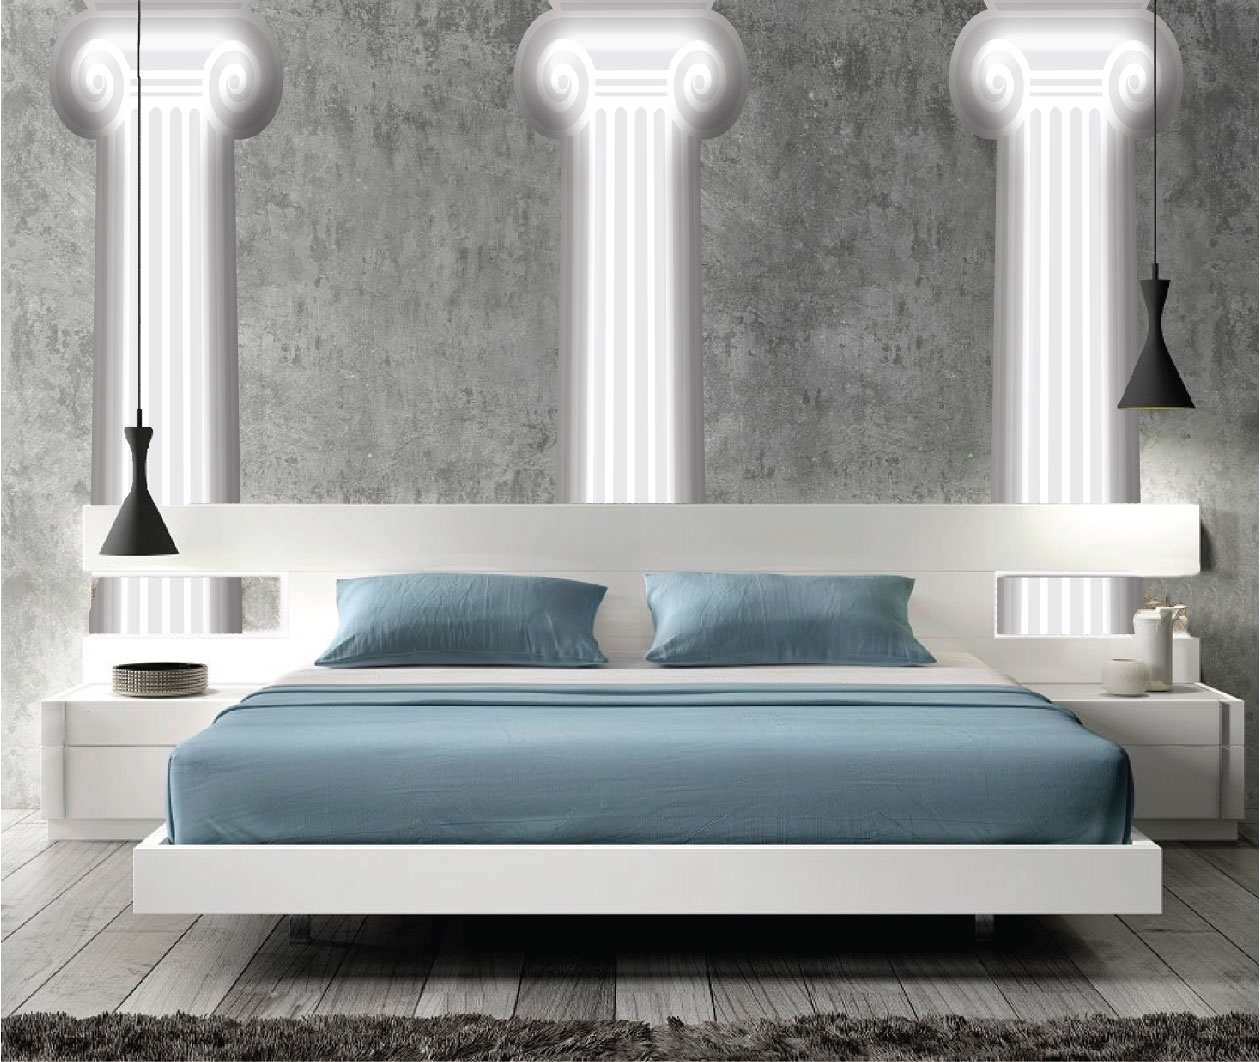 Design Wall Mural Decals pillar wall mural decal modern murals primedecals